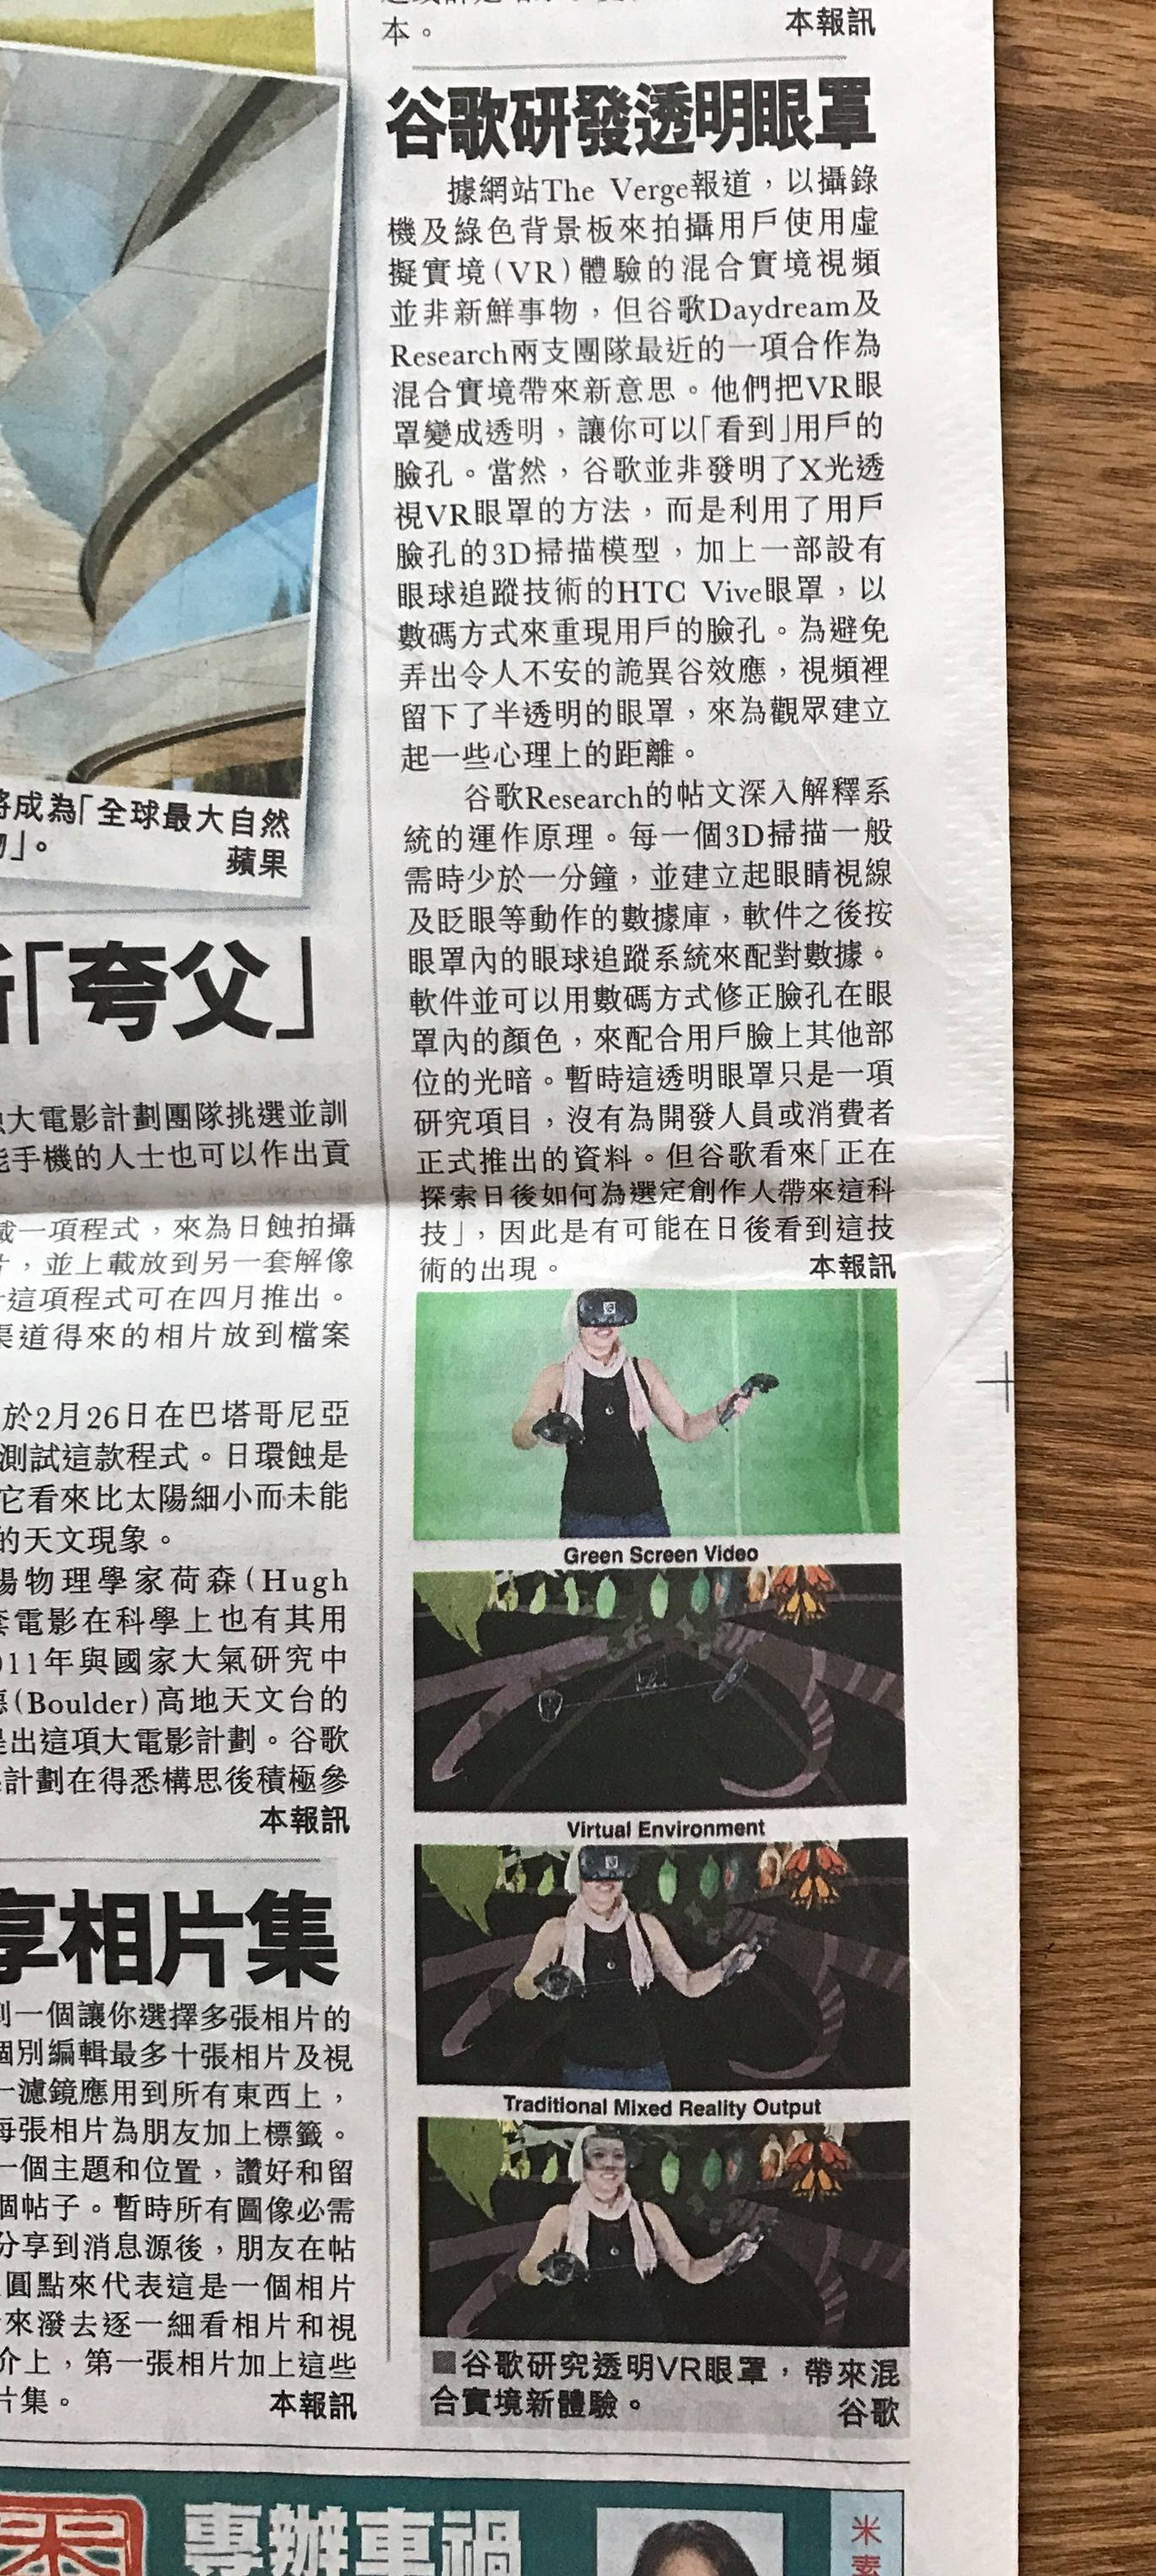 EstellaTse-ChineseNewspaper.jpg